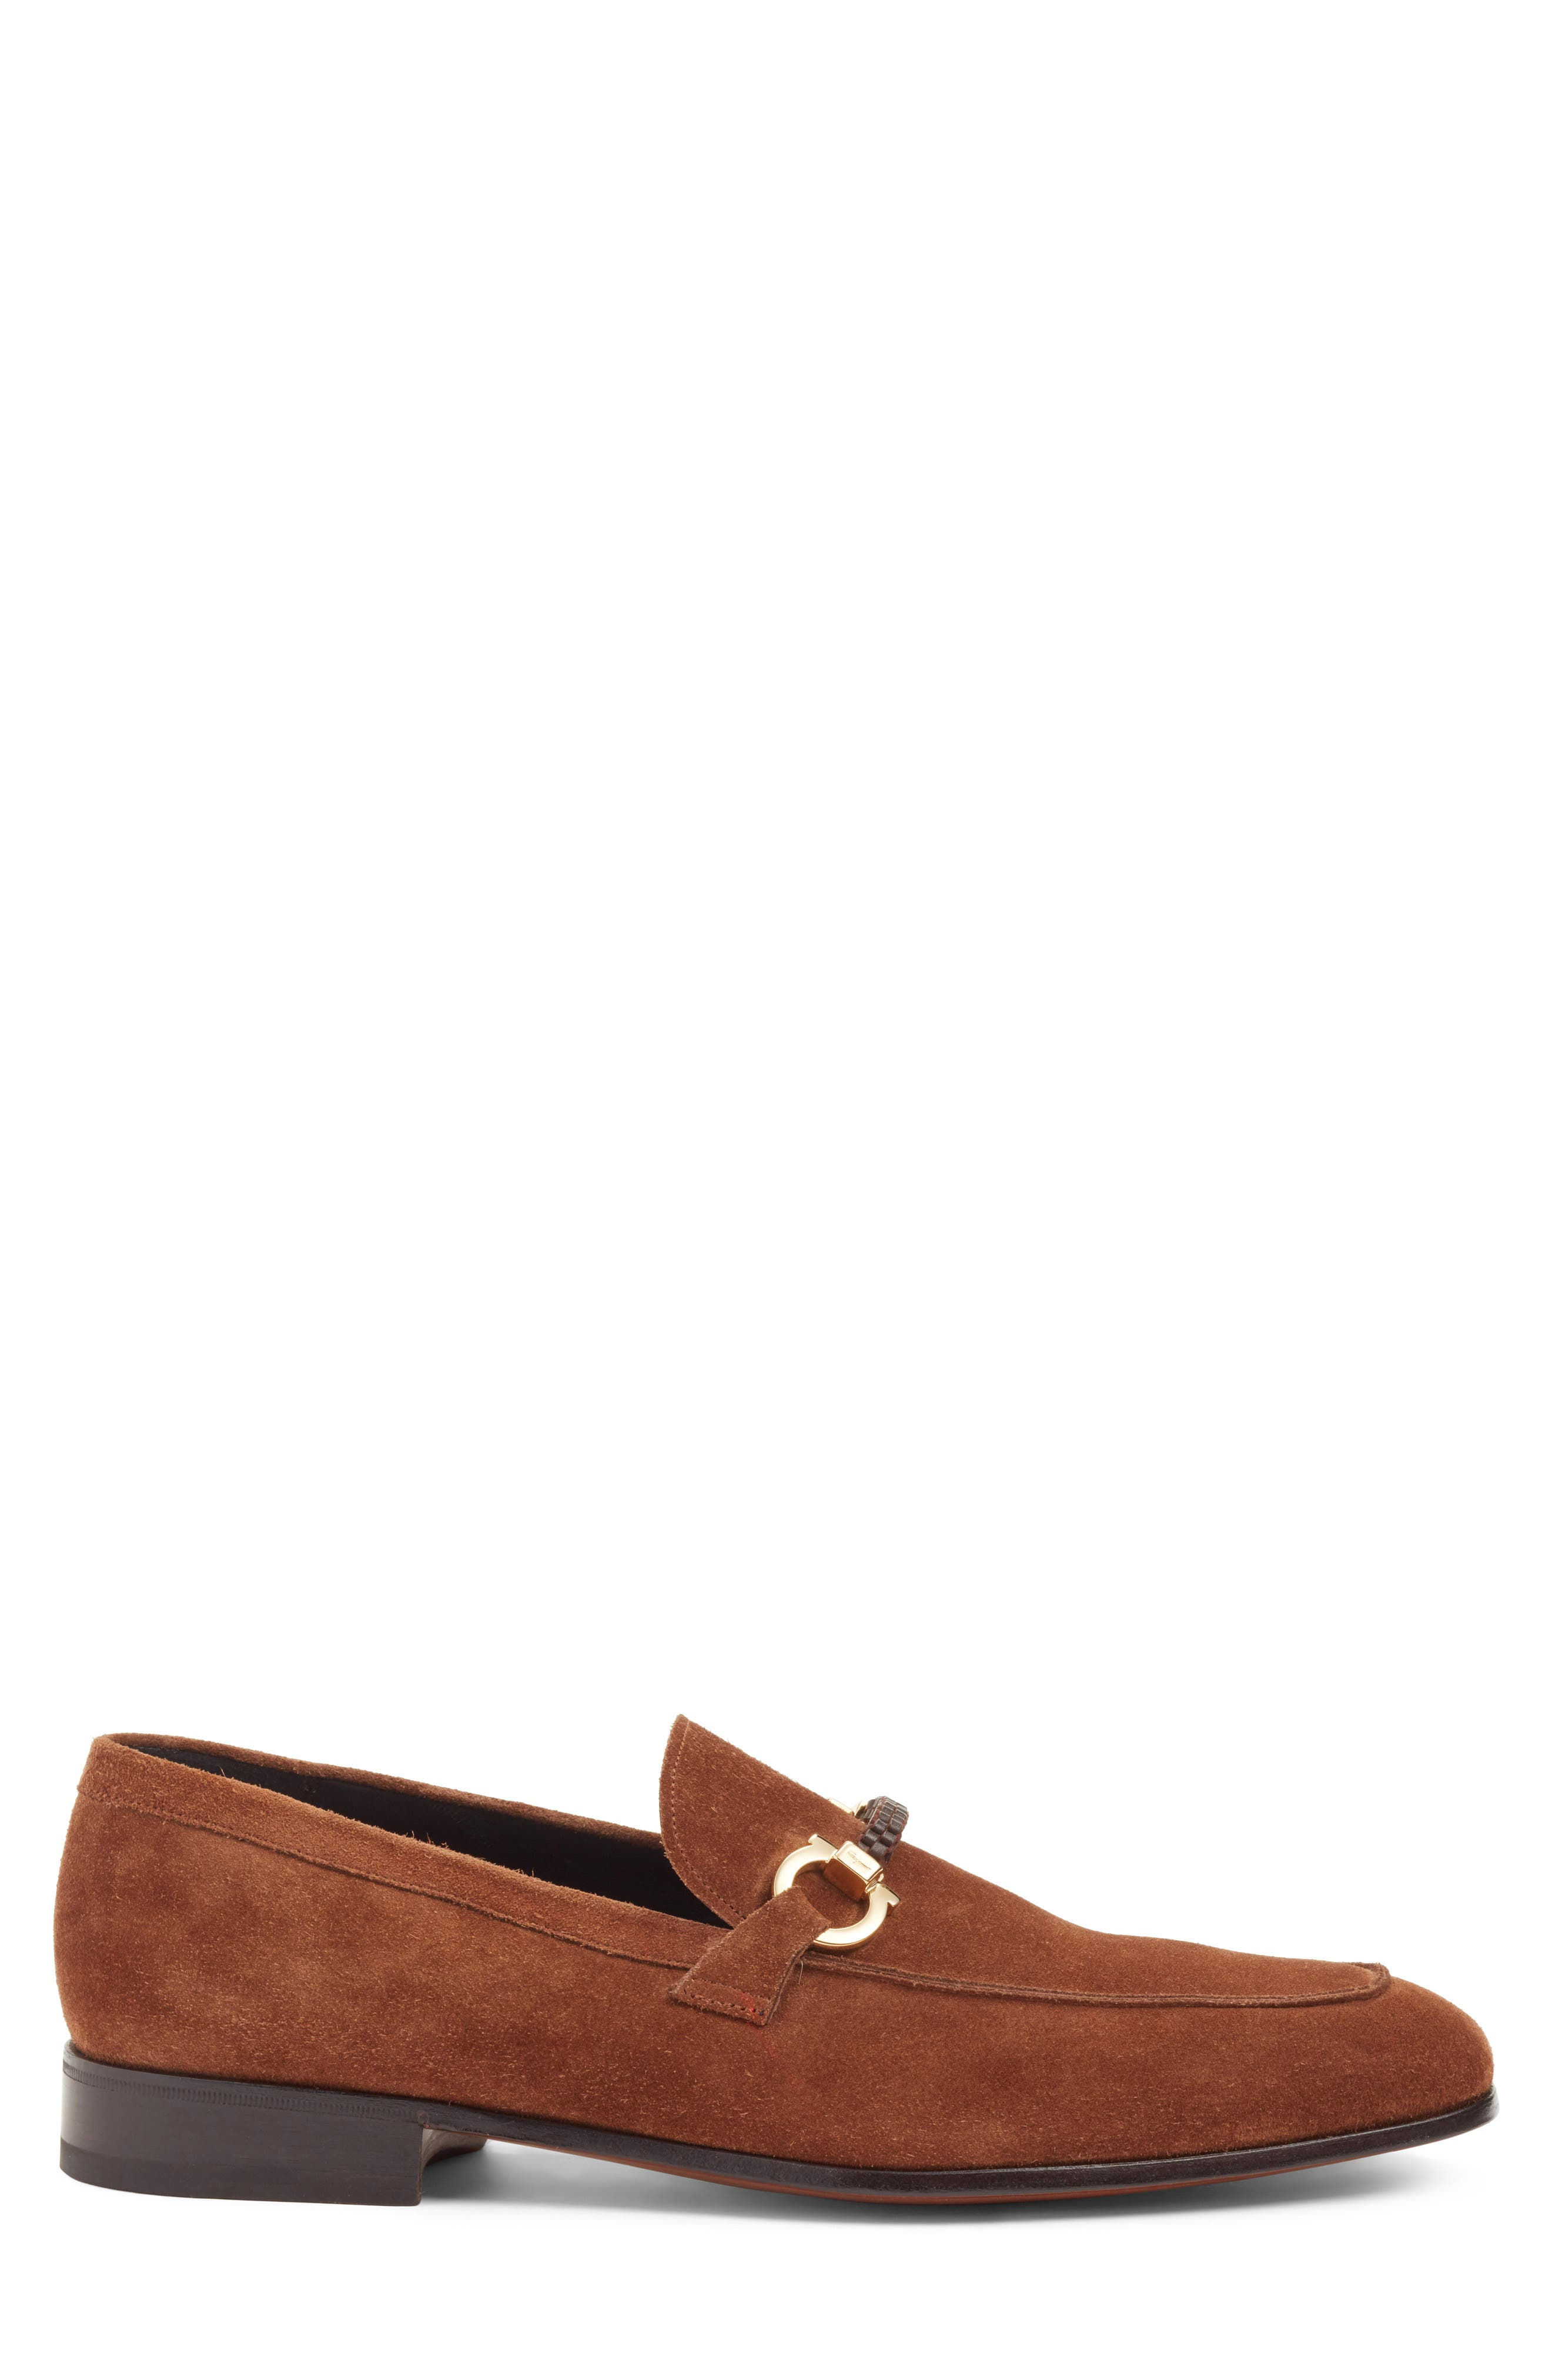 Cross Bit Loafer,                             Alternate thumbnail 4, color,                             Castoro